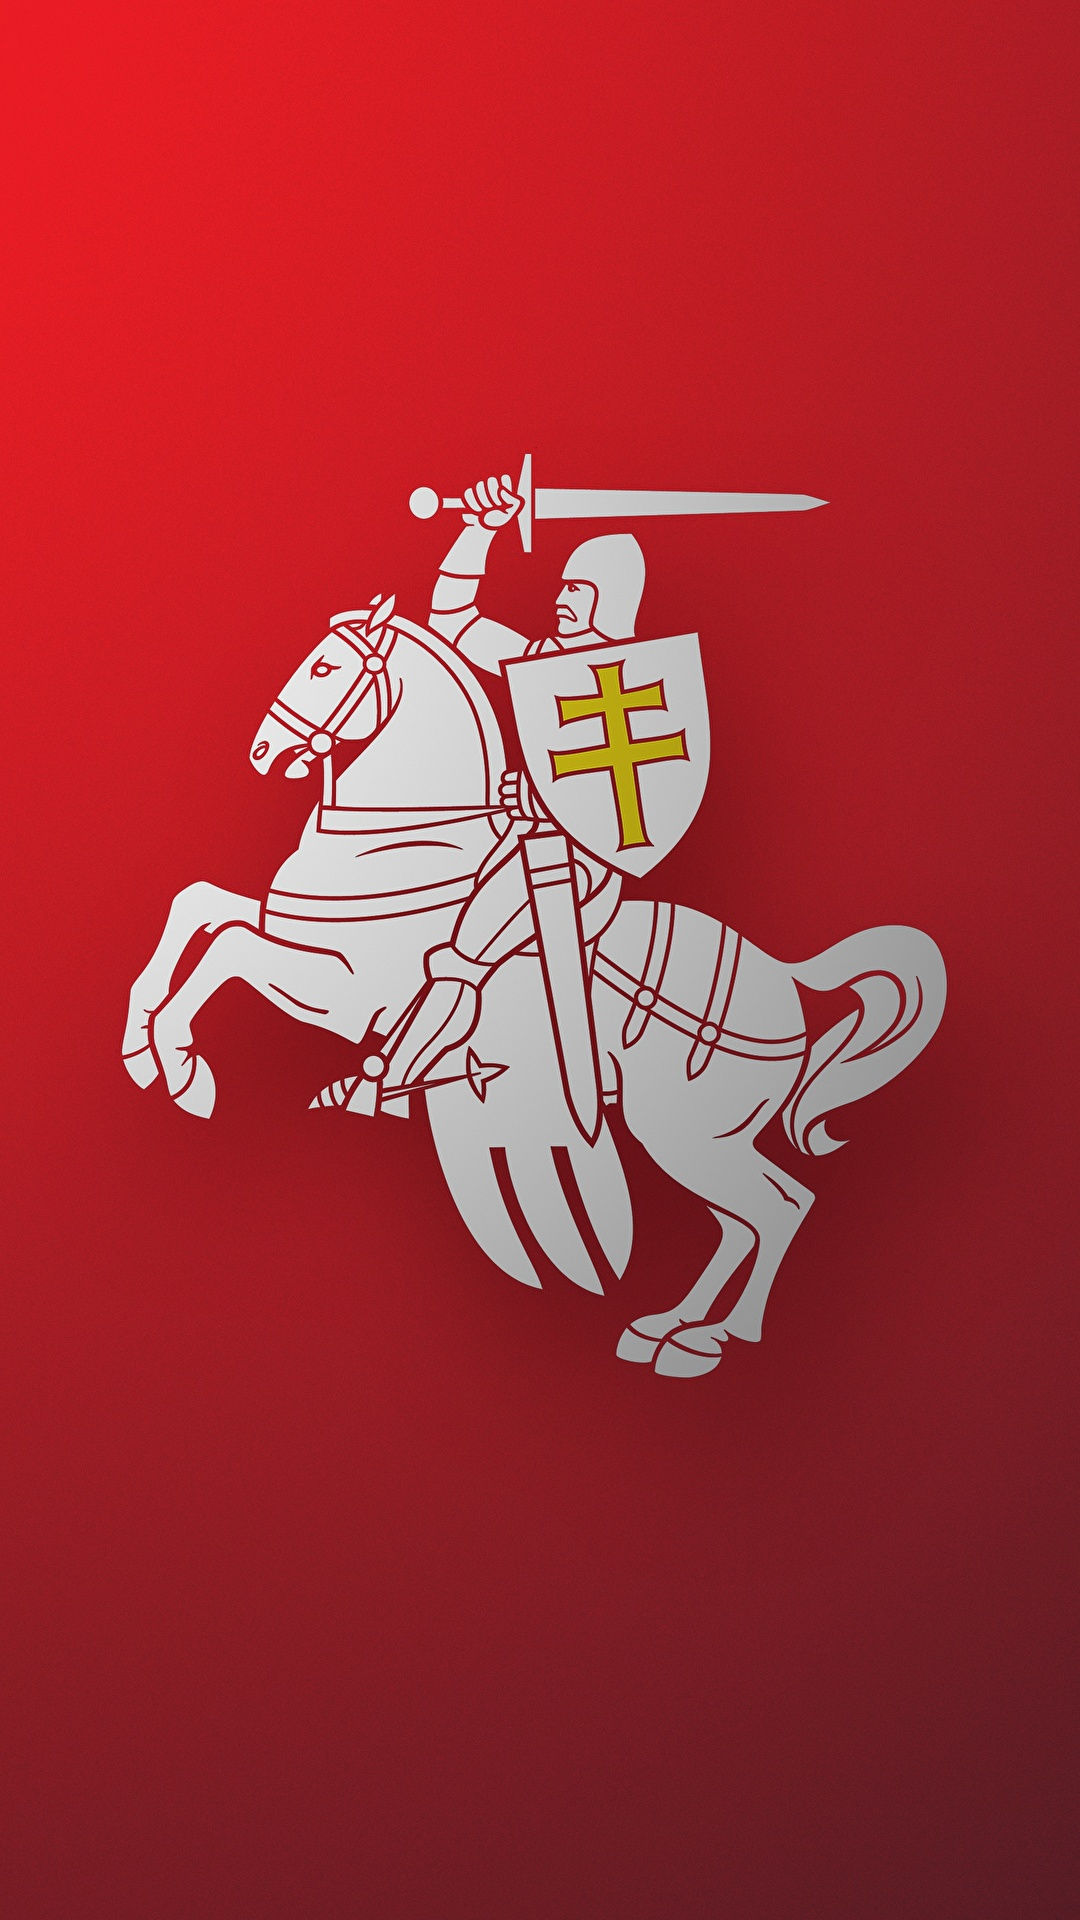 Picture Horses Knight Belarus Herbas Bnr Coat Of Arms Red 1080x1920